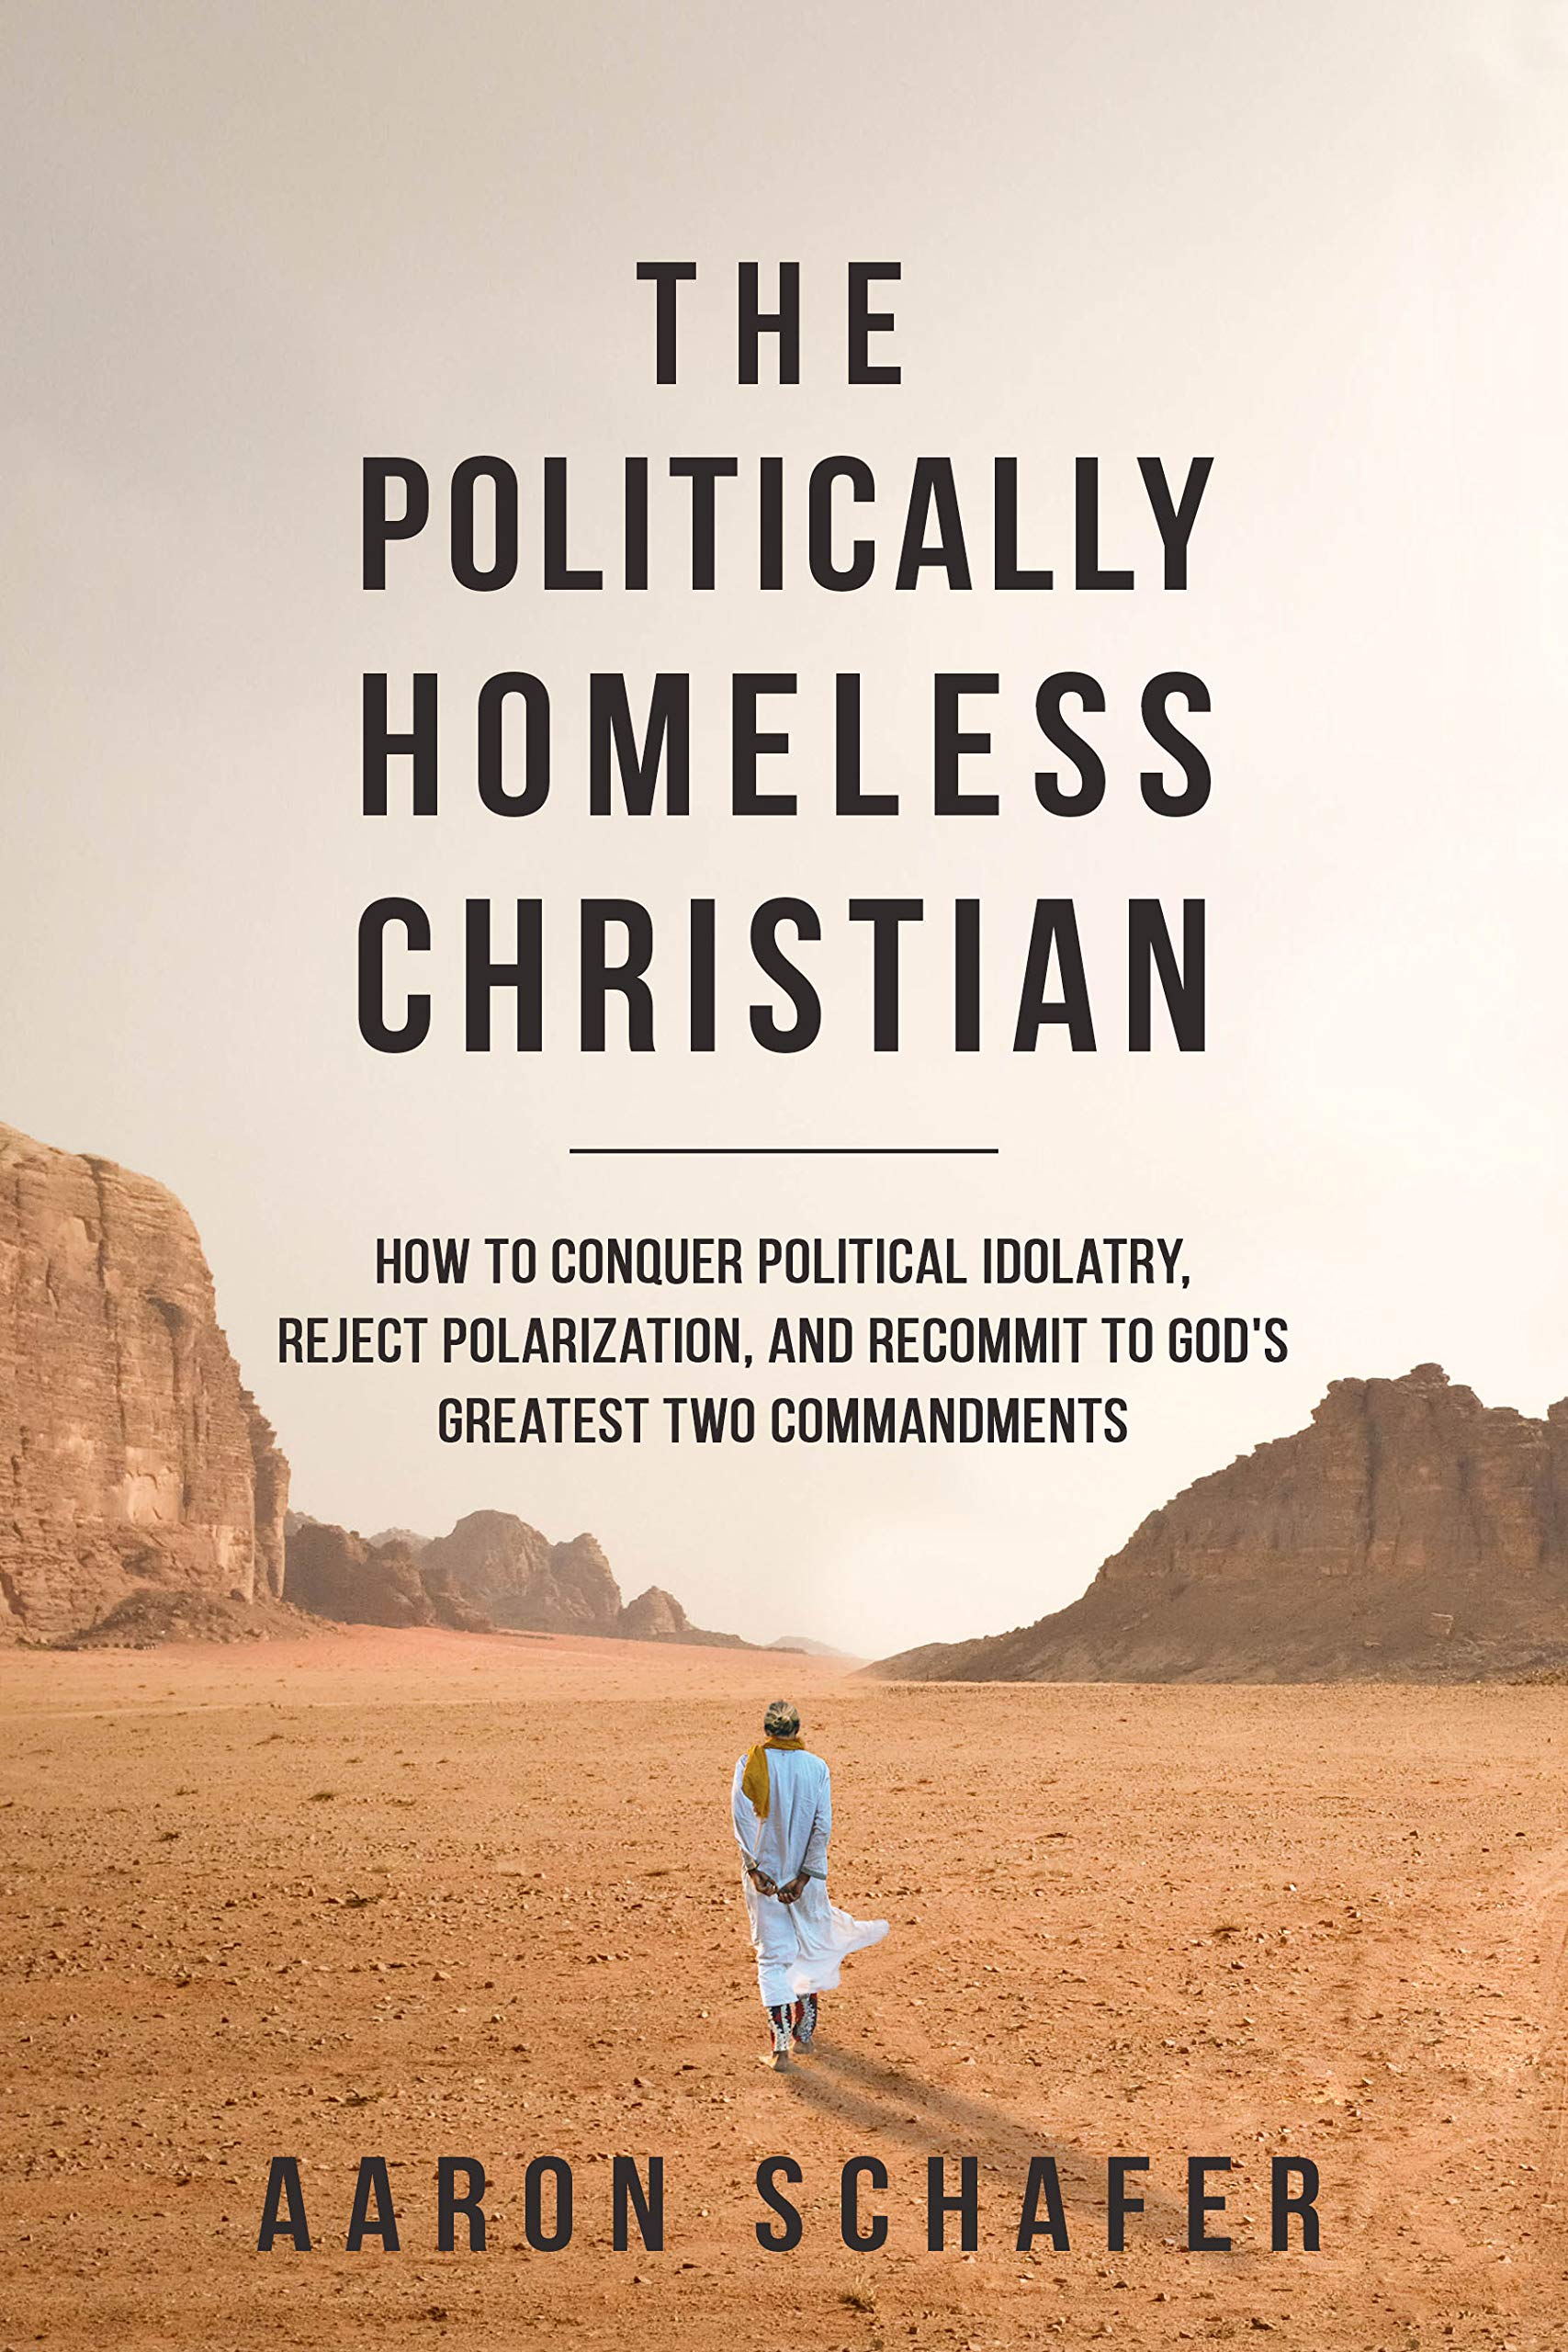 The Politically Homeless Christian: How to Conquer Political Idolatry, Reject Polarization, and Recommit to God's Greatest Two Commandments